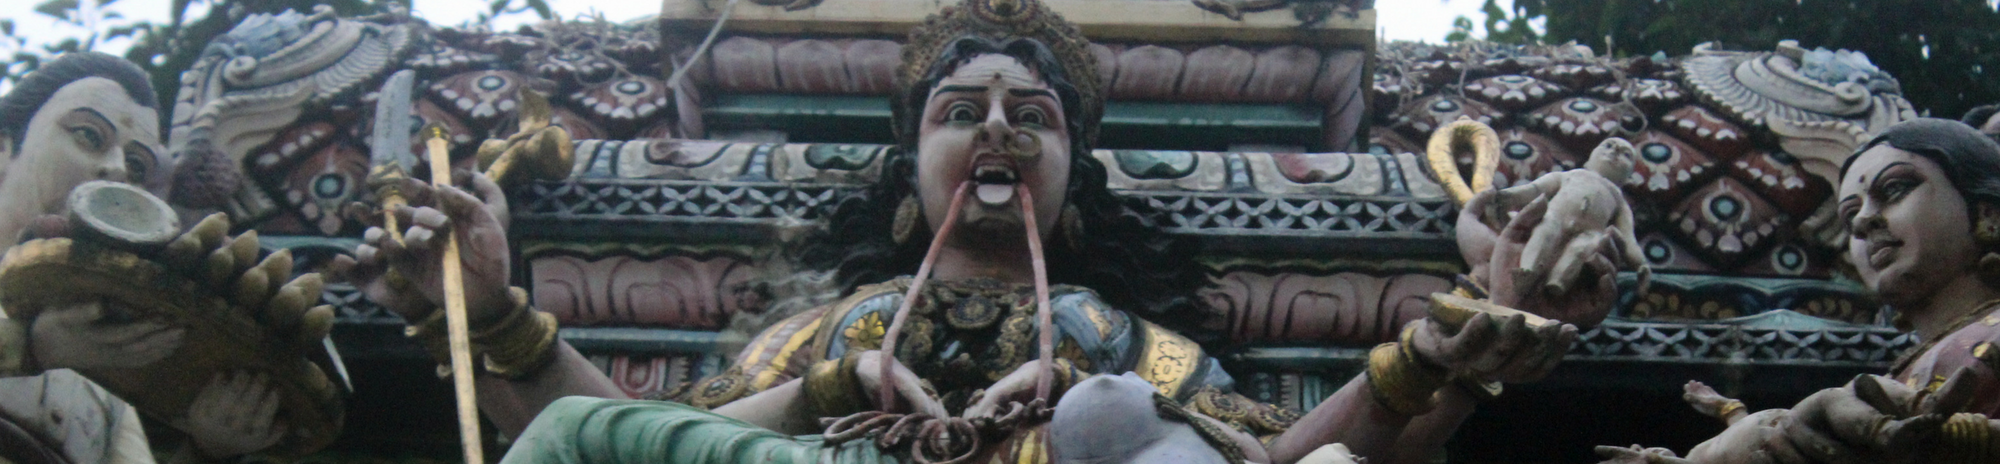 Kali – A Most Misunderstood Goddess - Kashgar